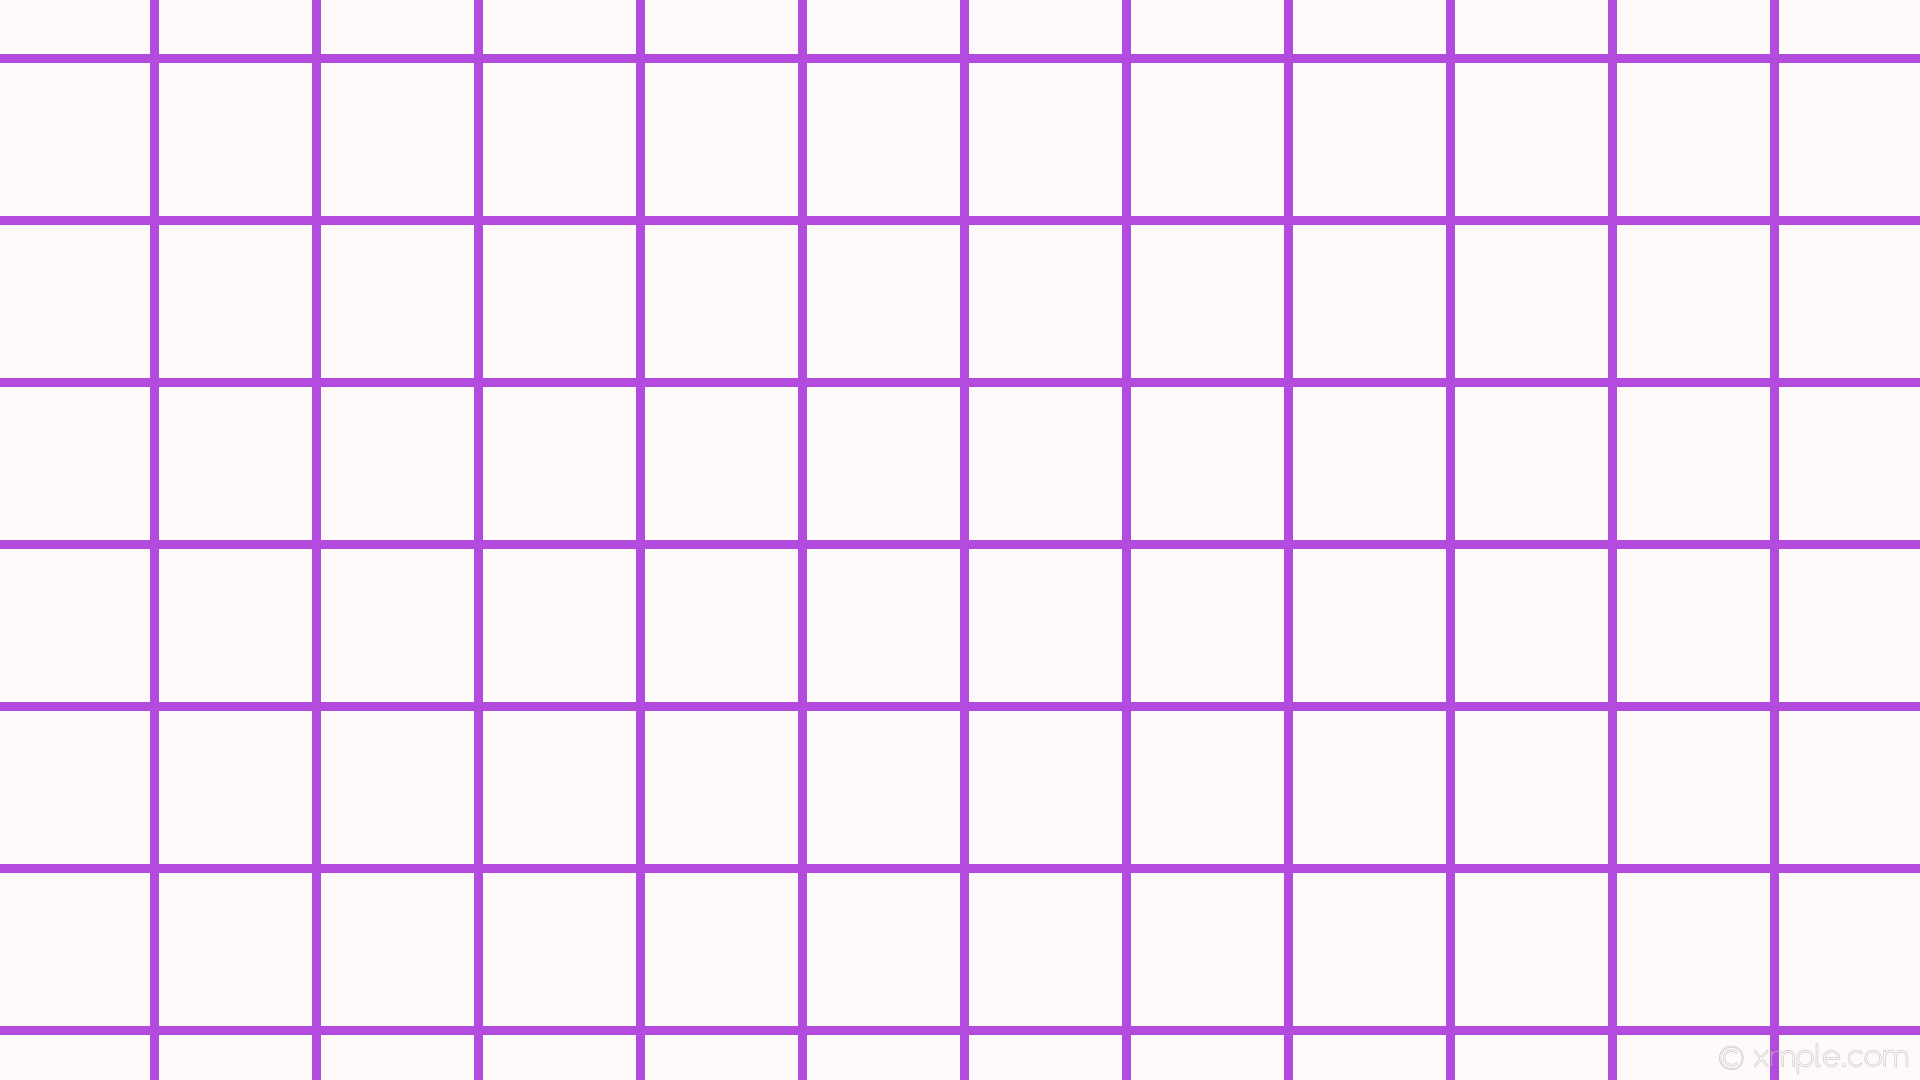 1920x1080 wallpaper white graph paper purple grid snow dark violet #fffafa #9400d3 0°  9px